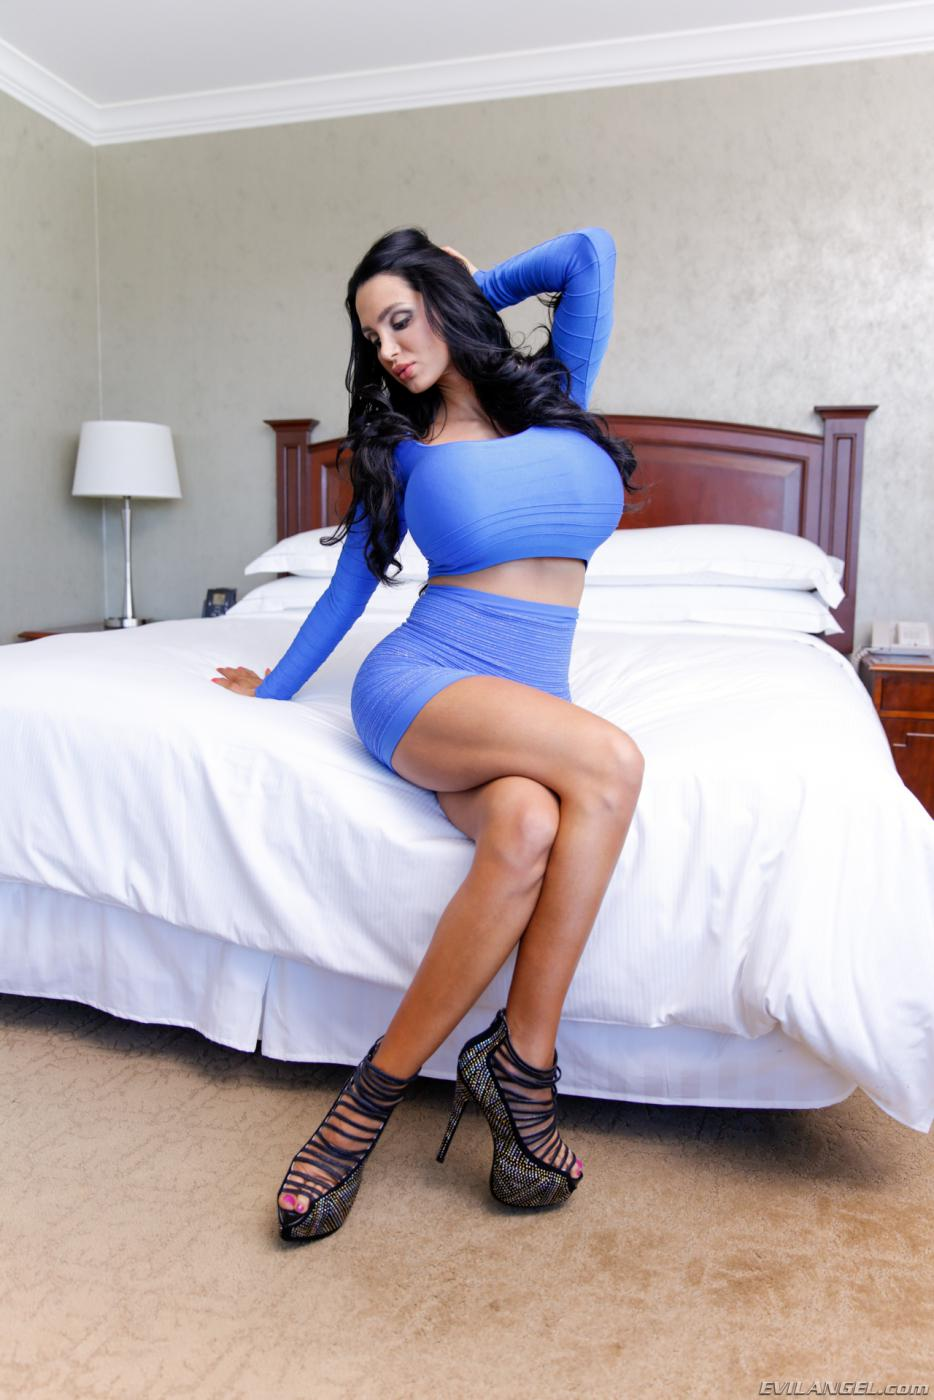 Amy Anderssen Porn Videos amy anderssen porn gallery. lusty latina babe with enormous